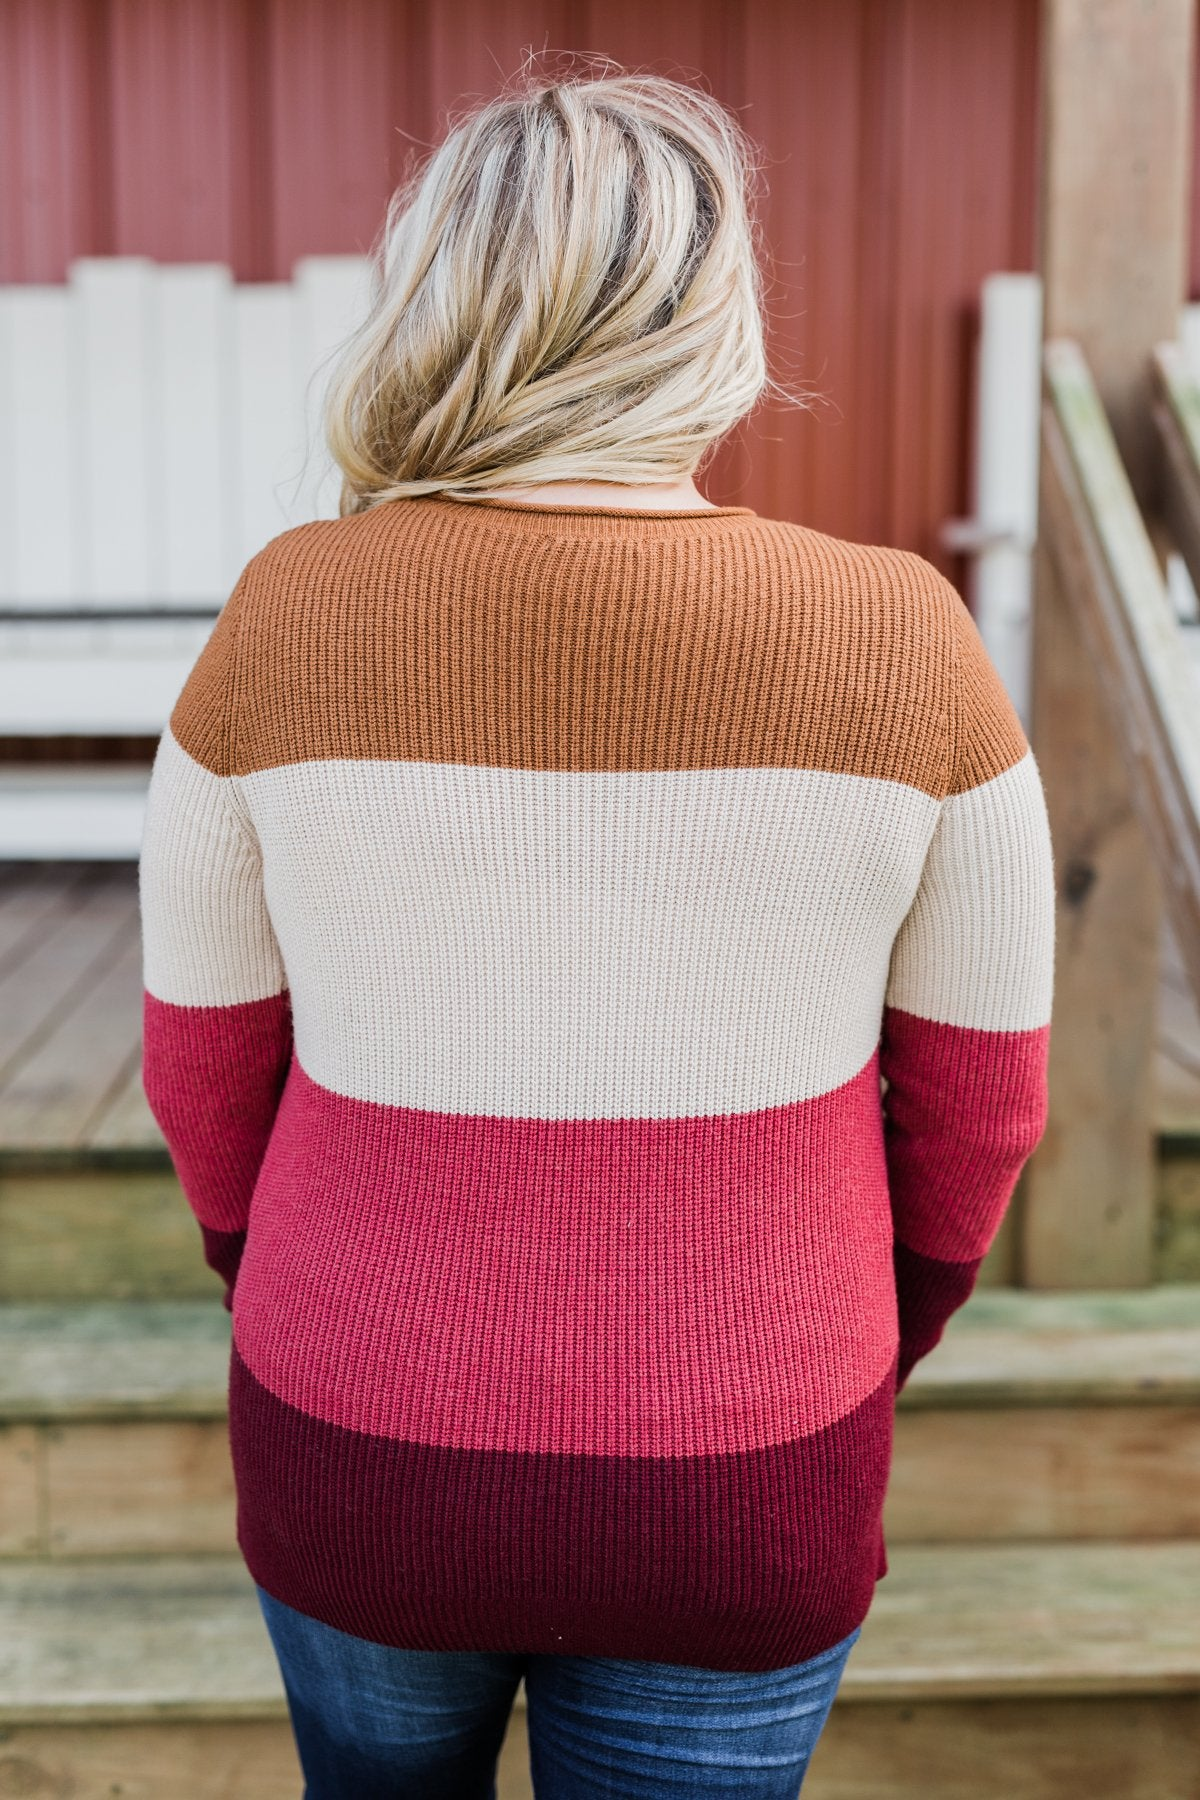 Say You Love Me Knit Sweater- Camel & Burgundy